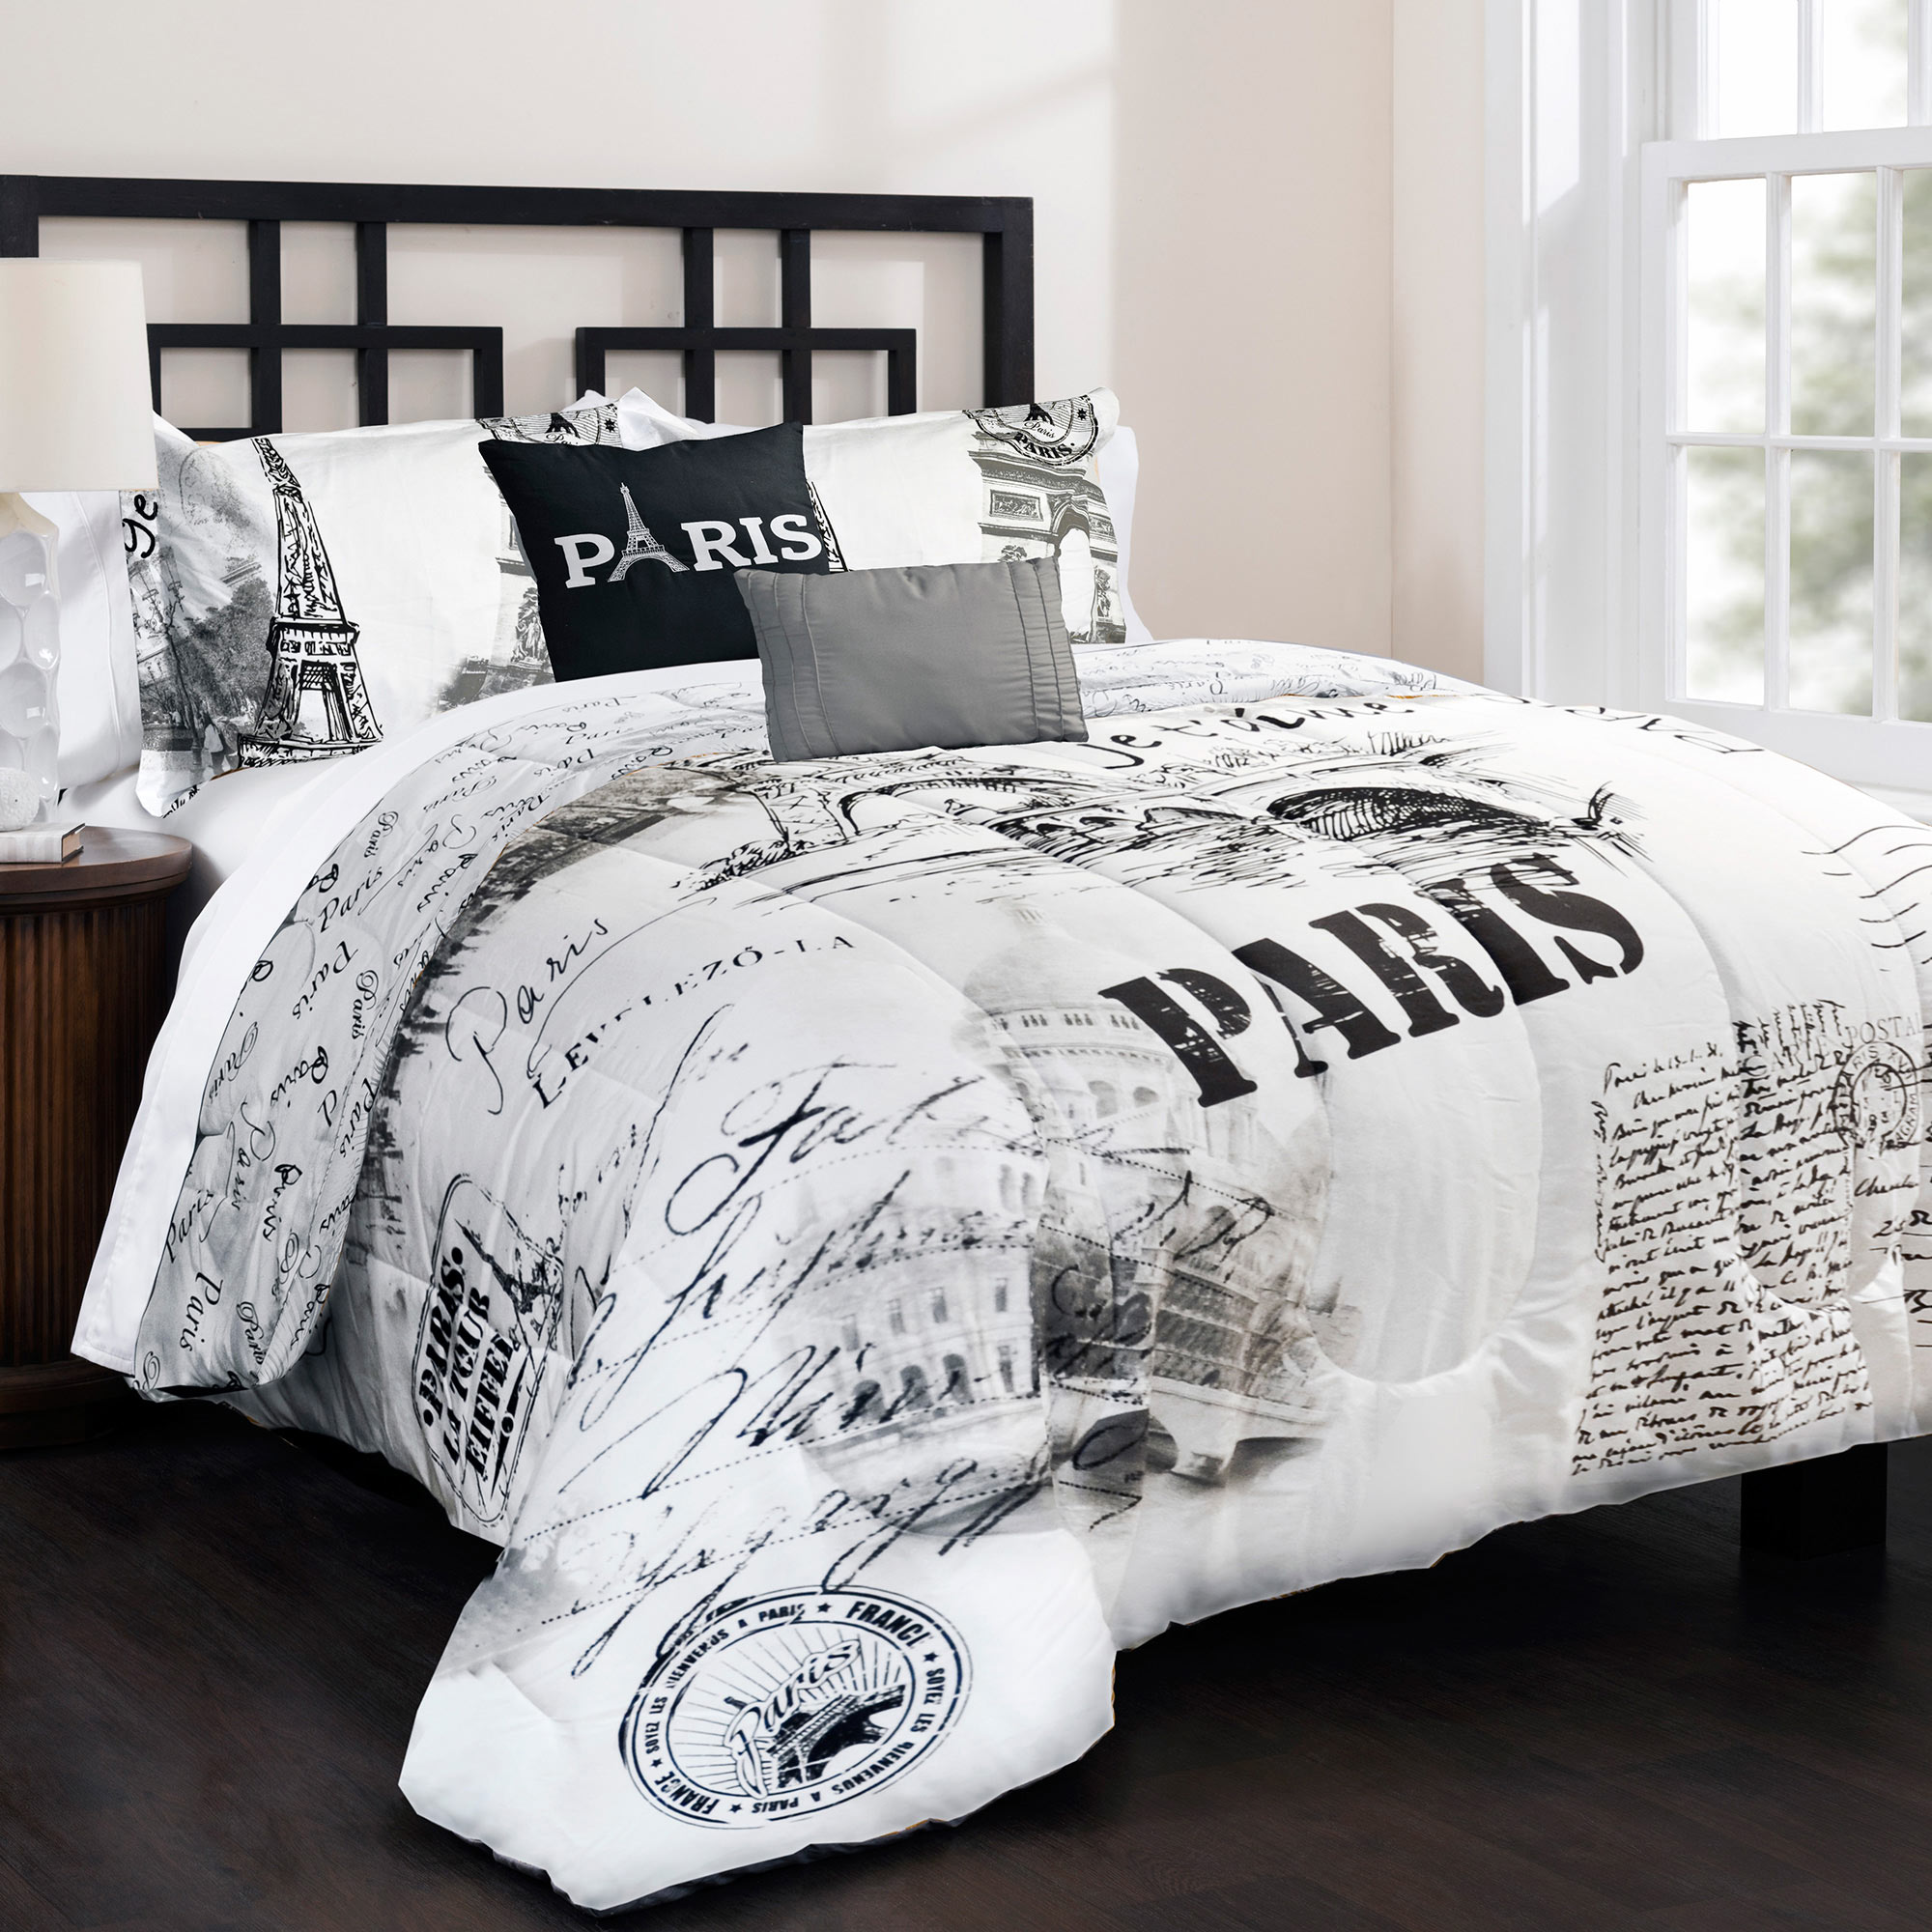 Admirable Bedroom with black and white comforter sets and laminate porcelain floor also curtain and sidetables